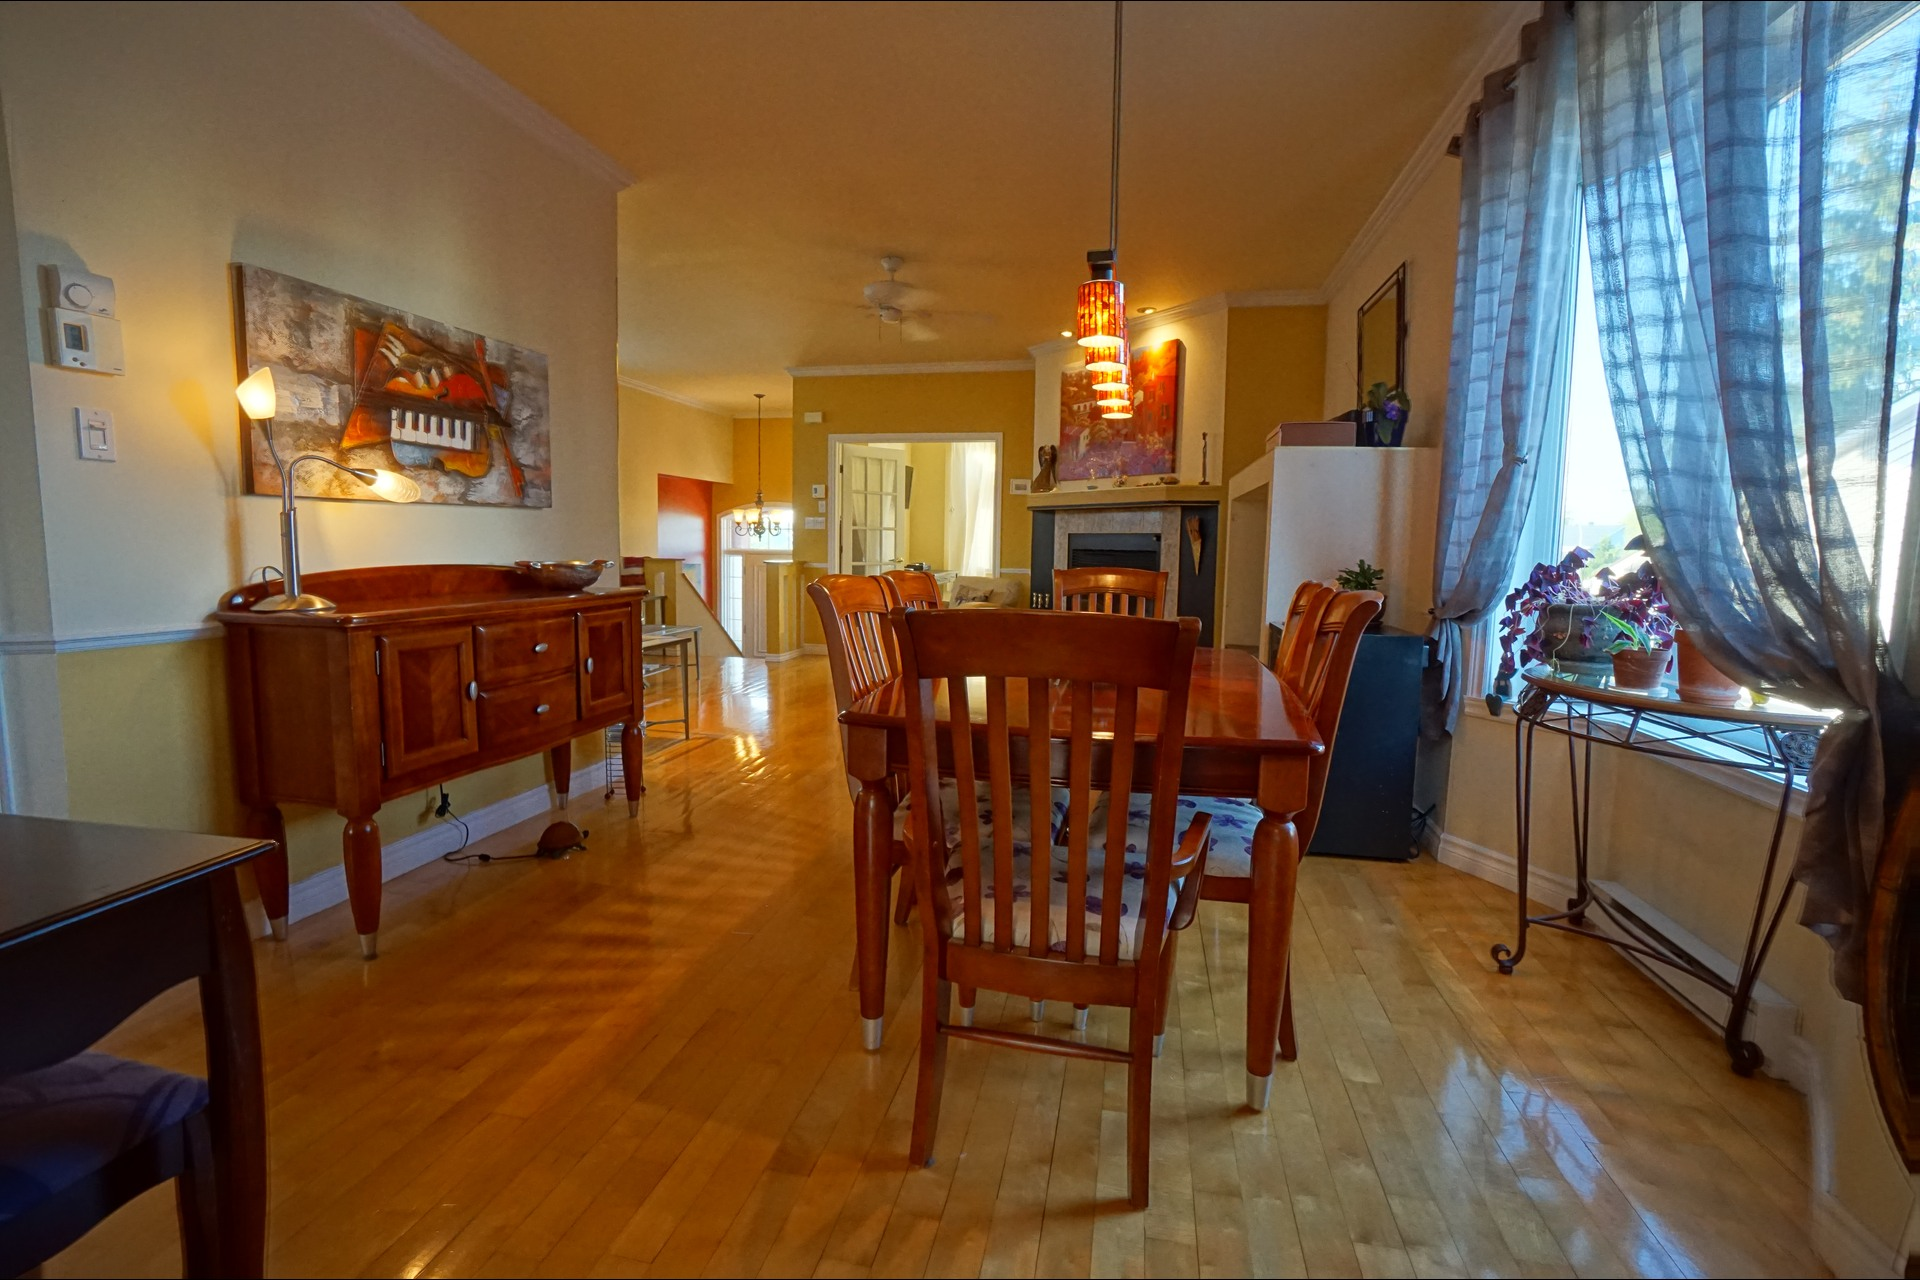 image 4 - Bungalow - For sale - Laval   - 11 rooms